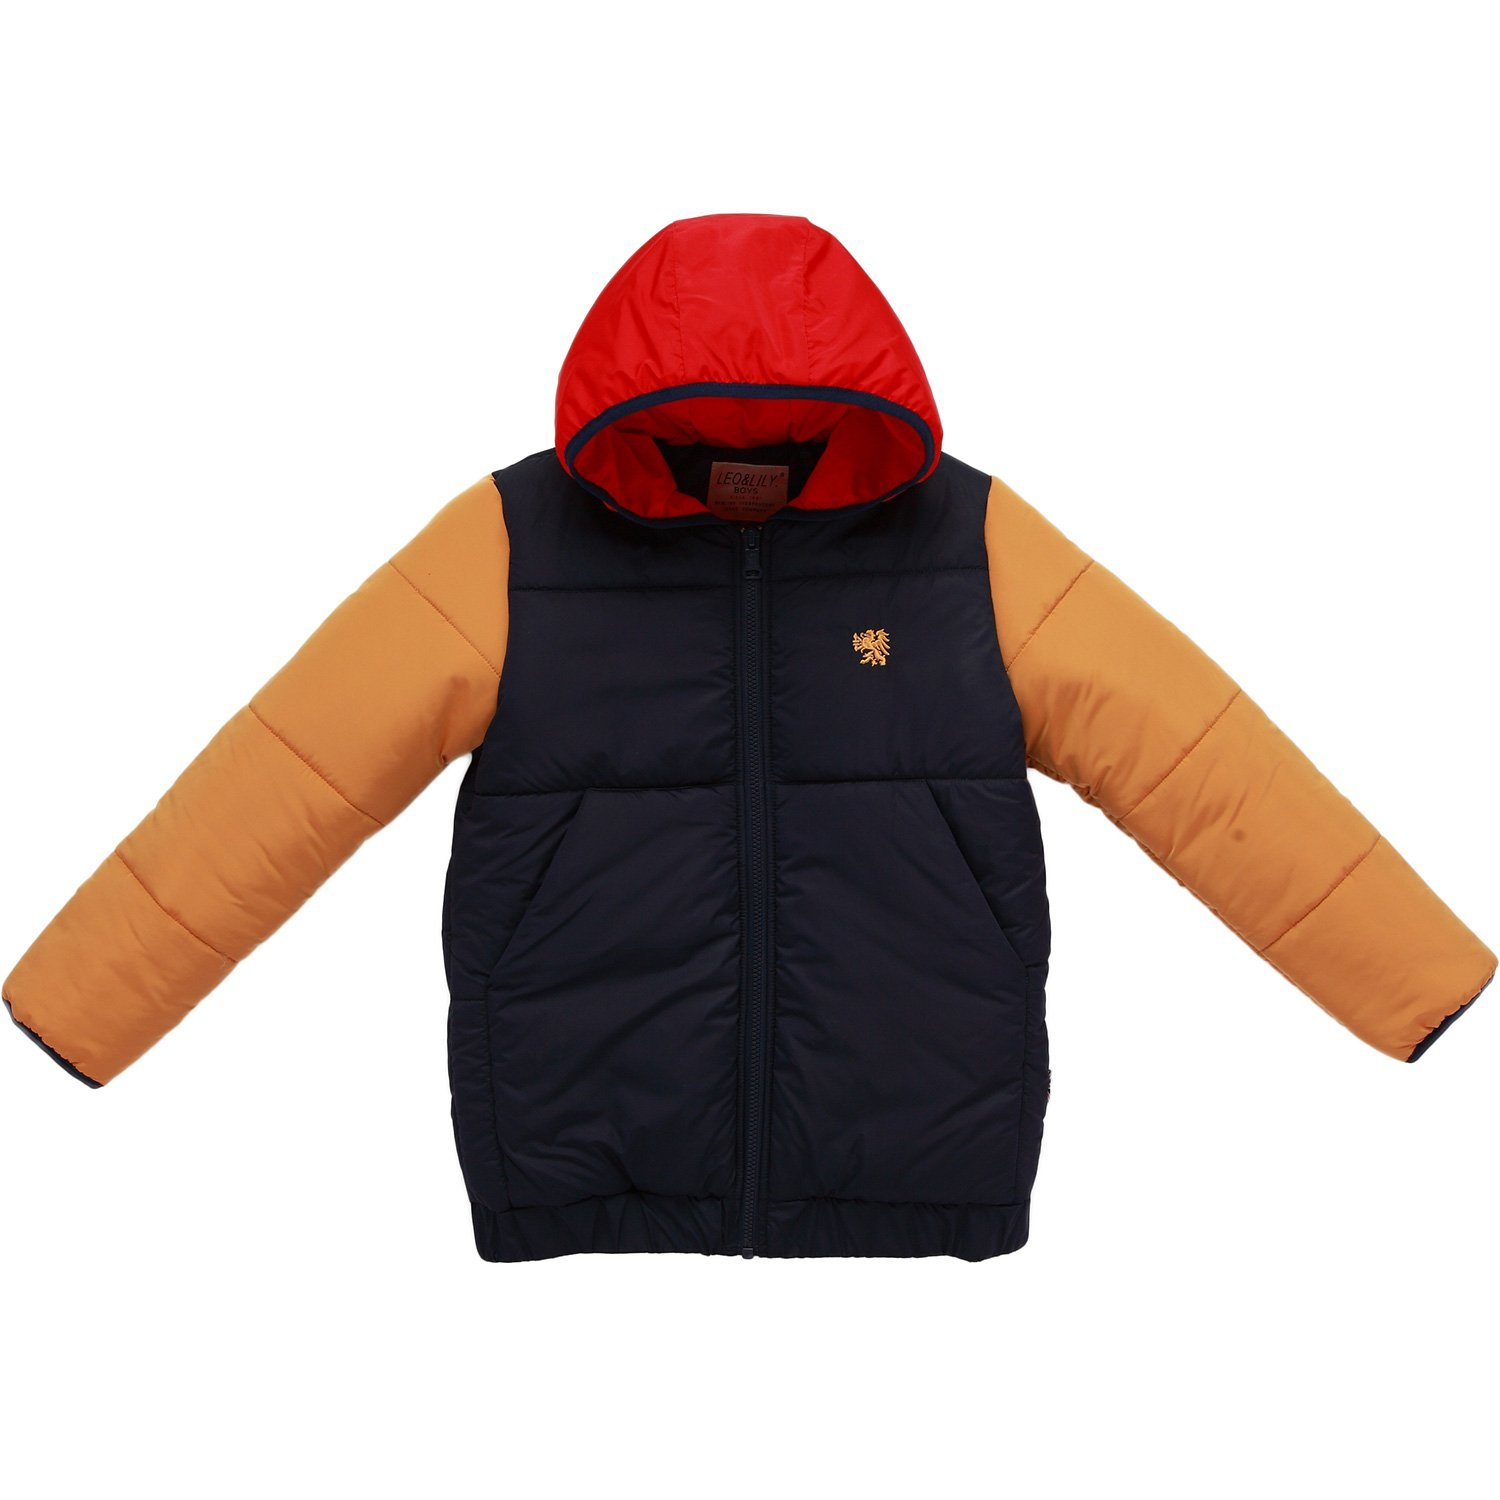 5fdeb54d5627 Amazon.com  Leo Lily Boys Winter Padded Puffer Contrast Jacket Outwear Coats   Clothing